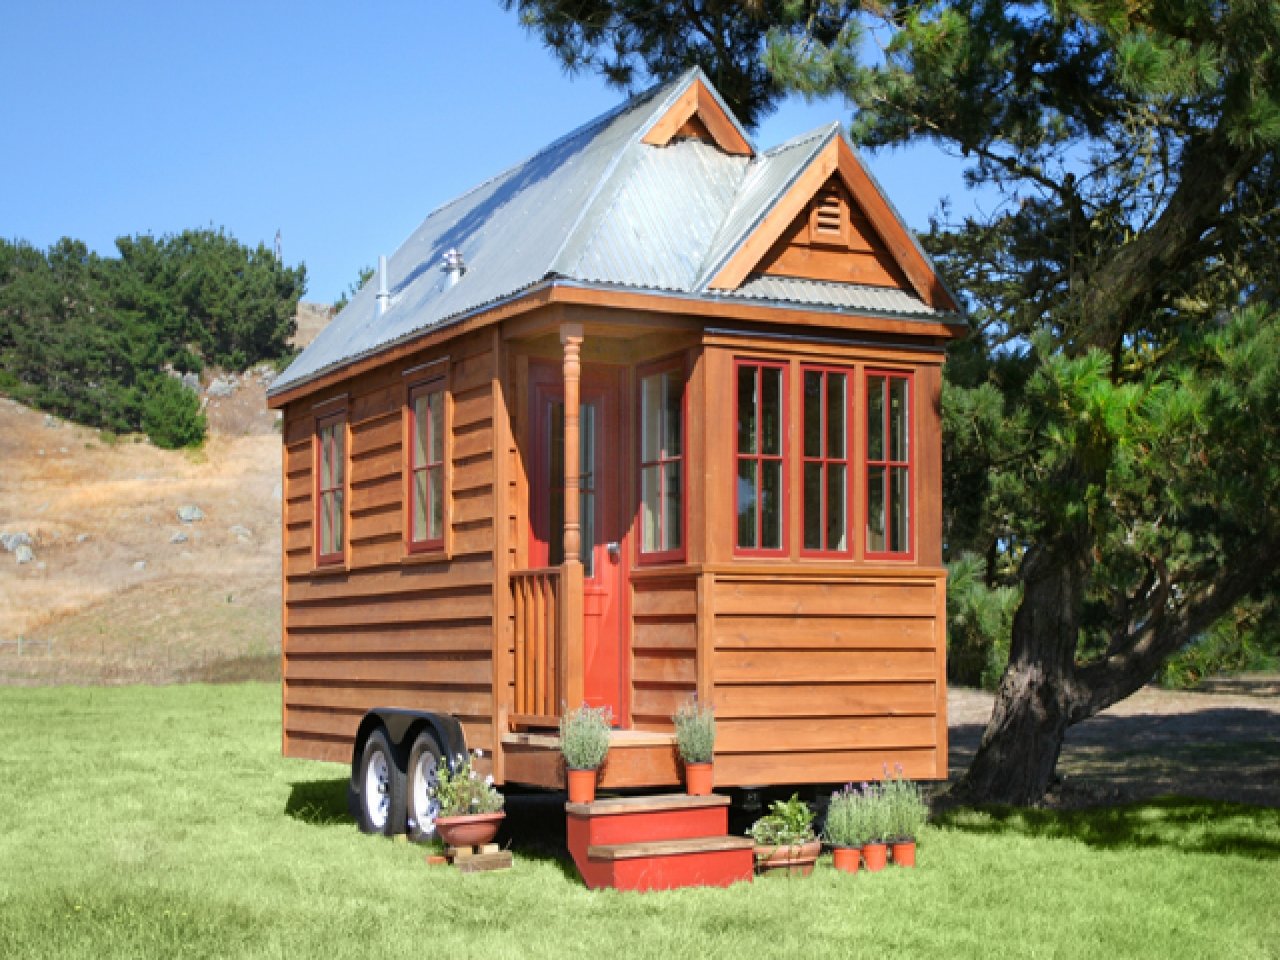 Tiny Victorian House Plans Small Cabins Tiny Houses Homes: Texas Tiny House Cottages Small Tiny Houses, Small House